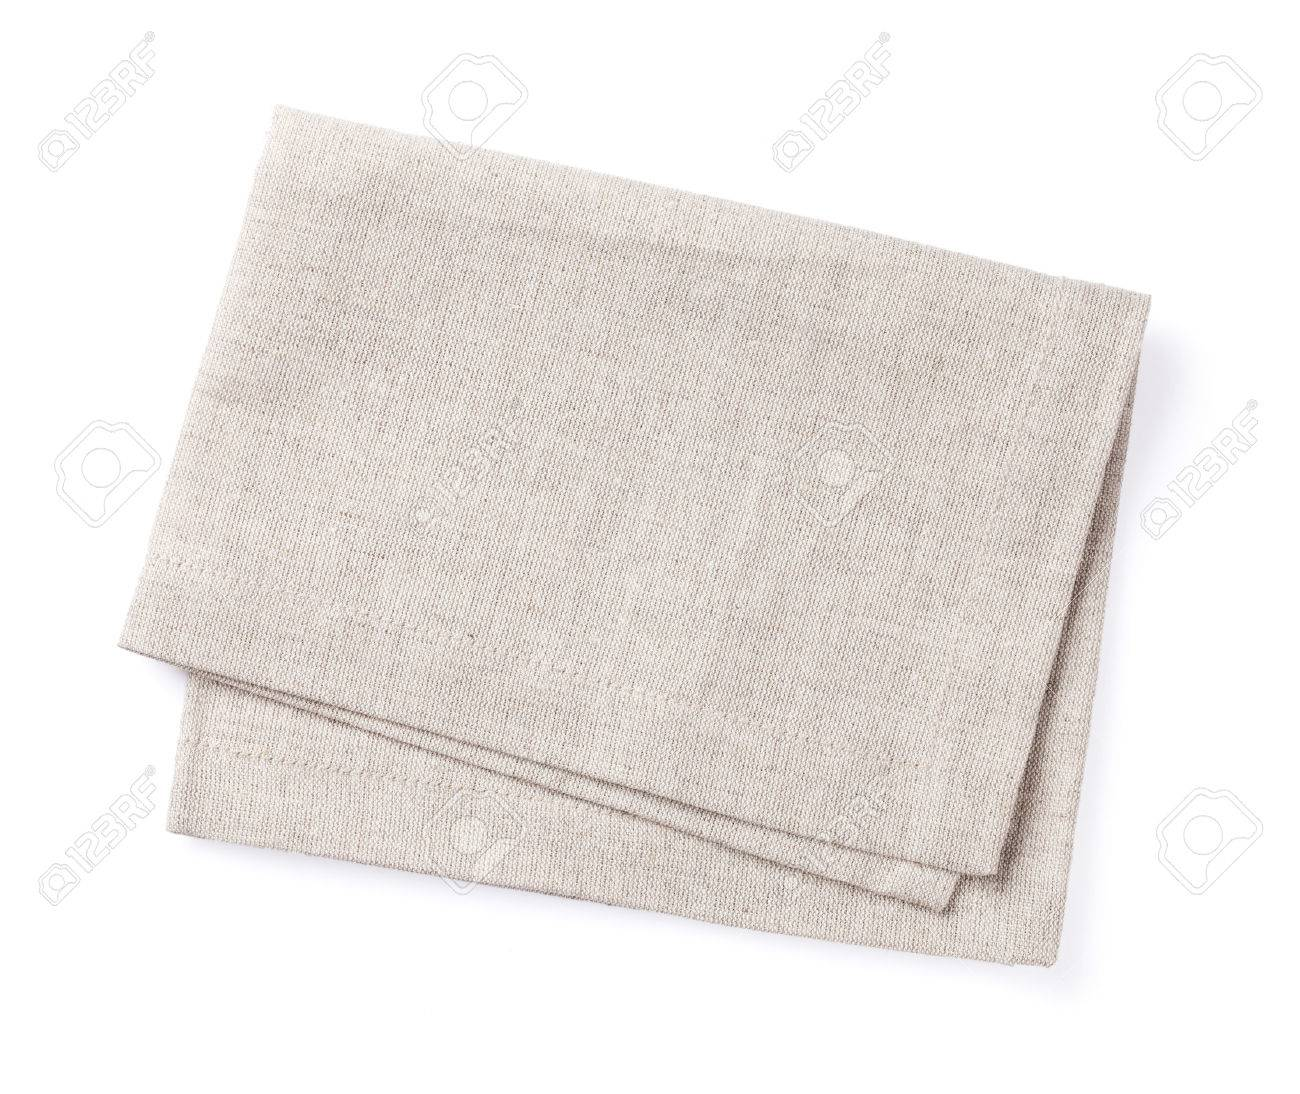 Kitchen towel. Isolated on white background - 50905118